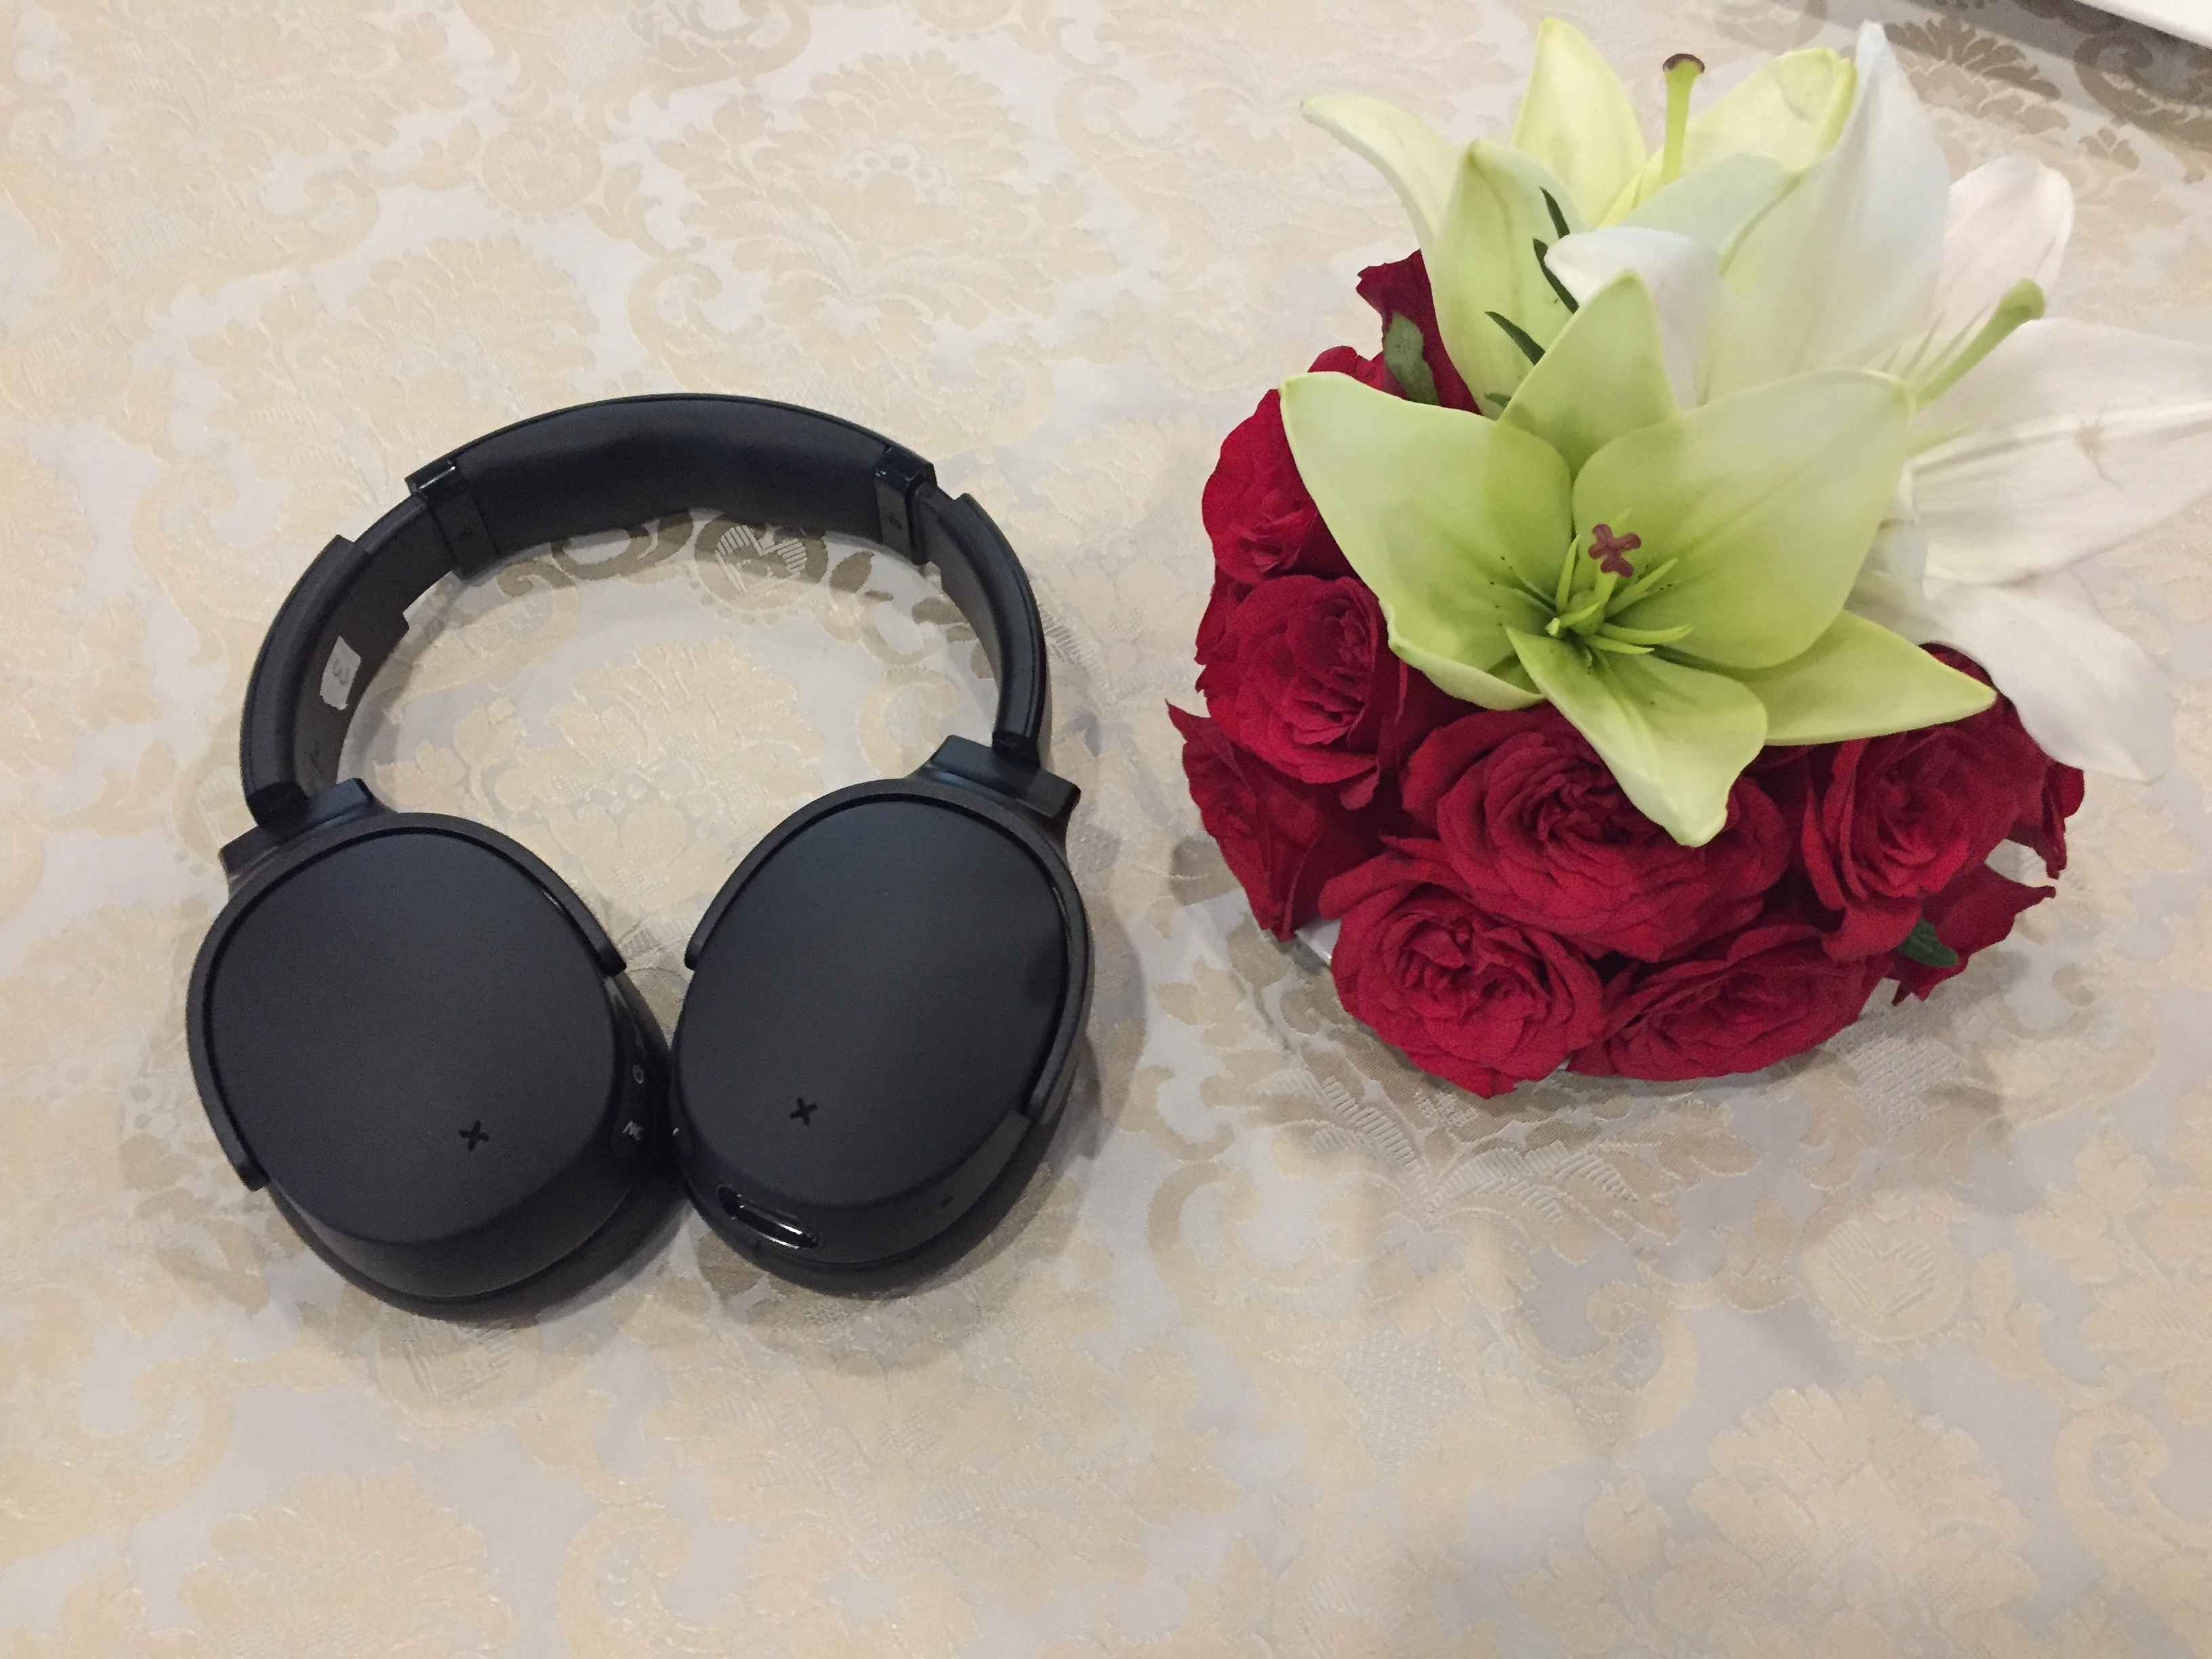 Skullcandy Venue Bluetooth headphones with Active Noise Cancellation